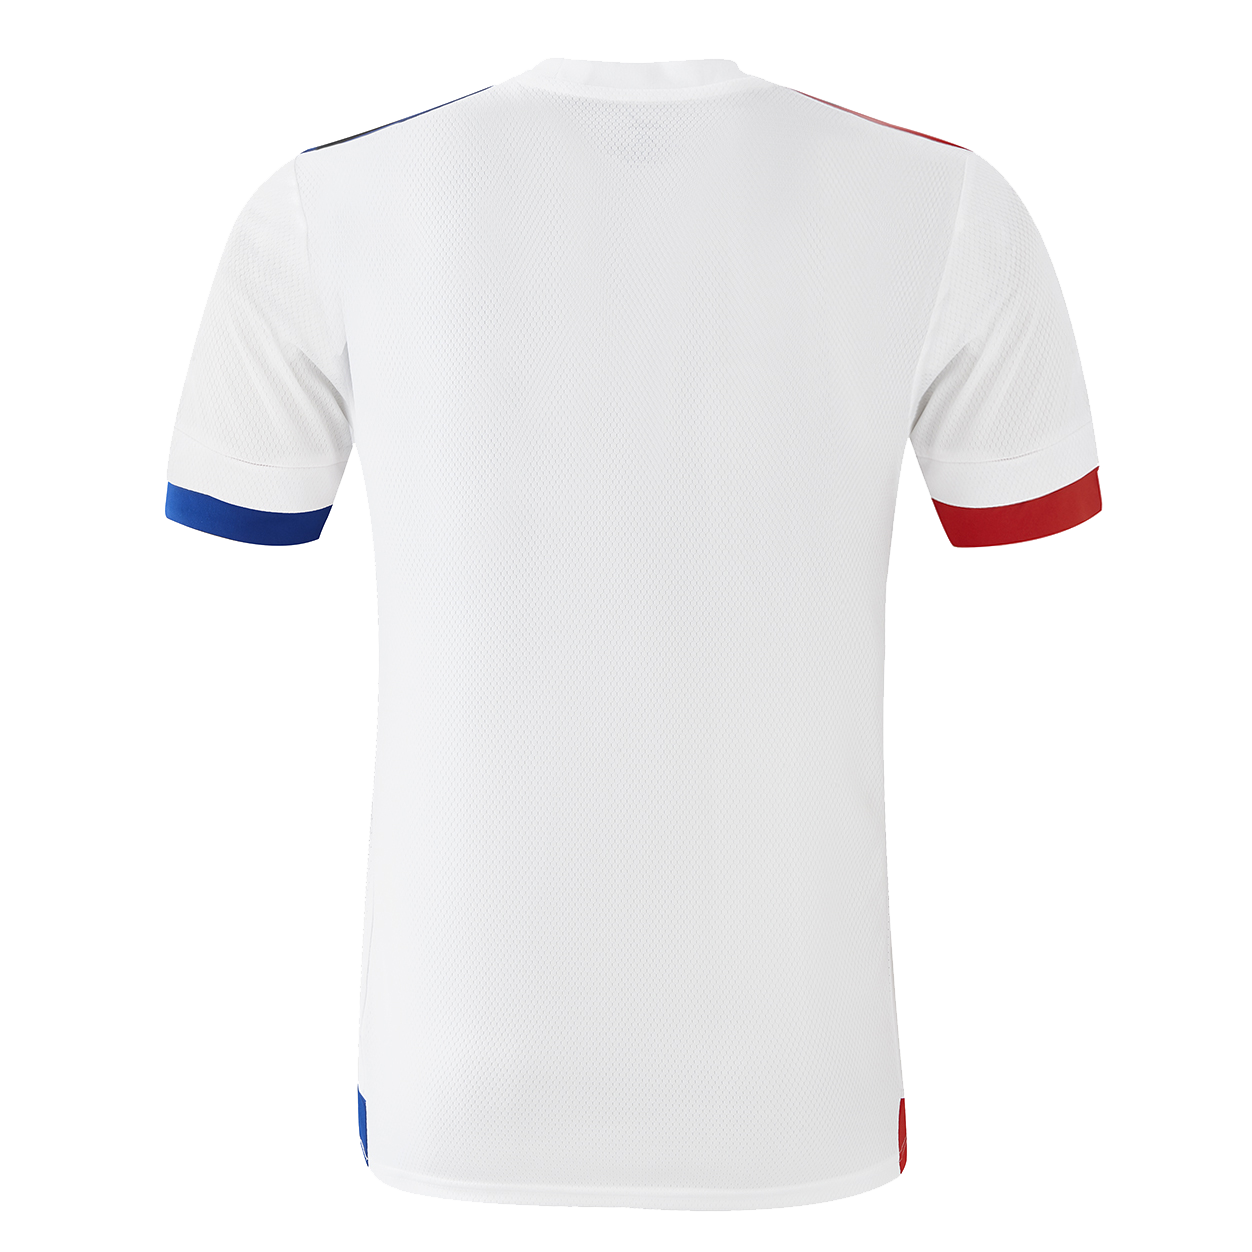 Lyon Men's Home Olympic Jersey 20-21